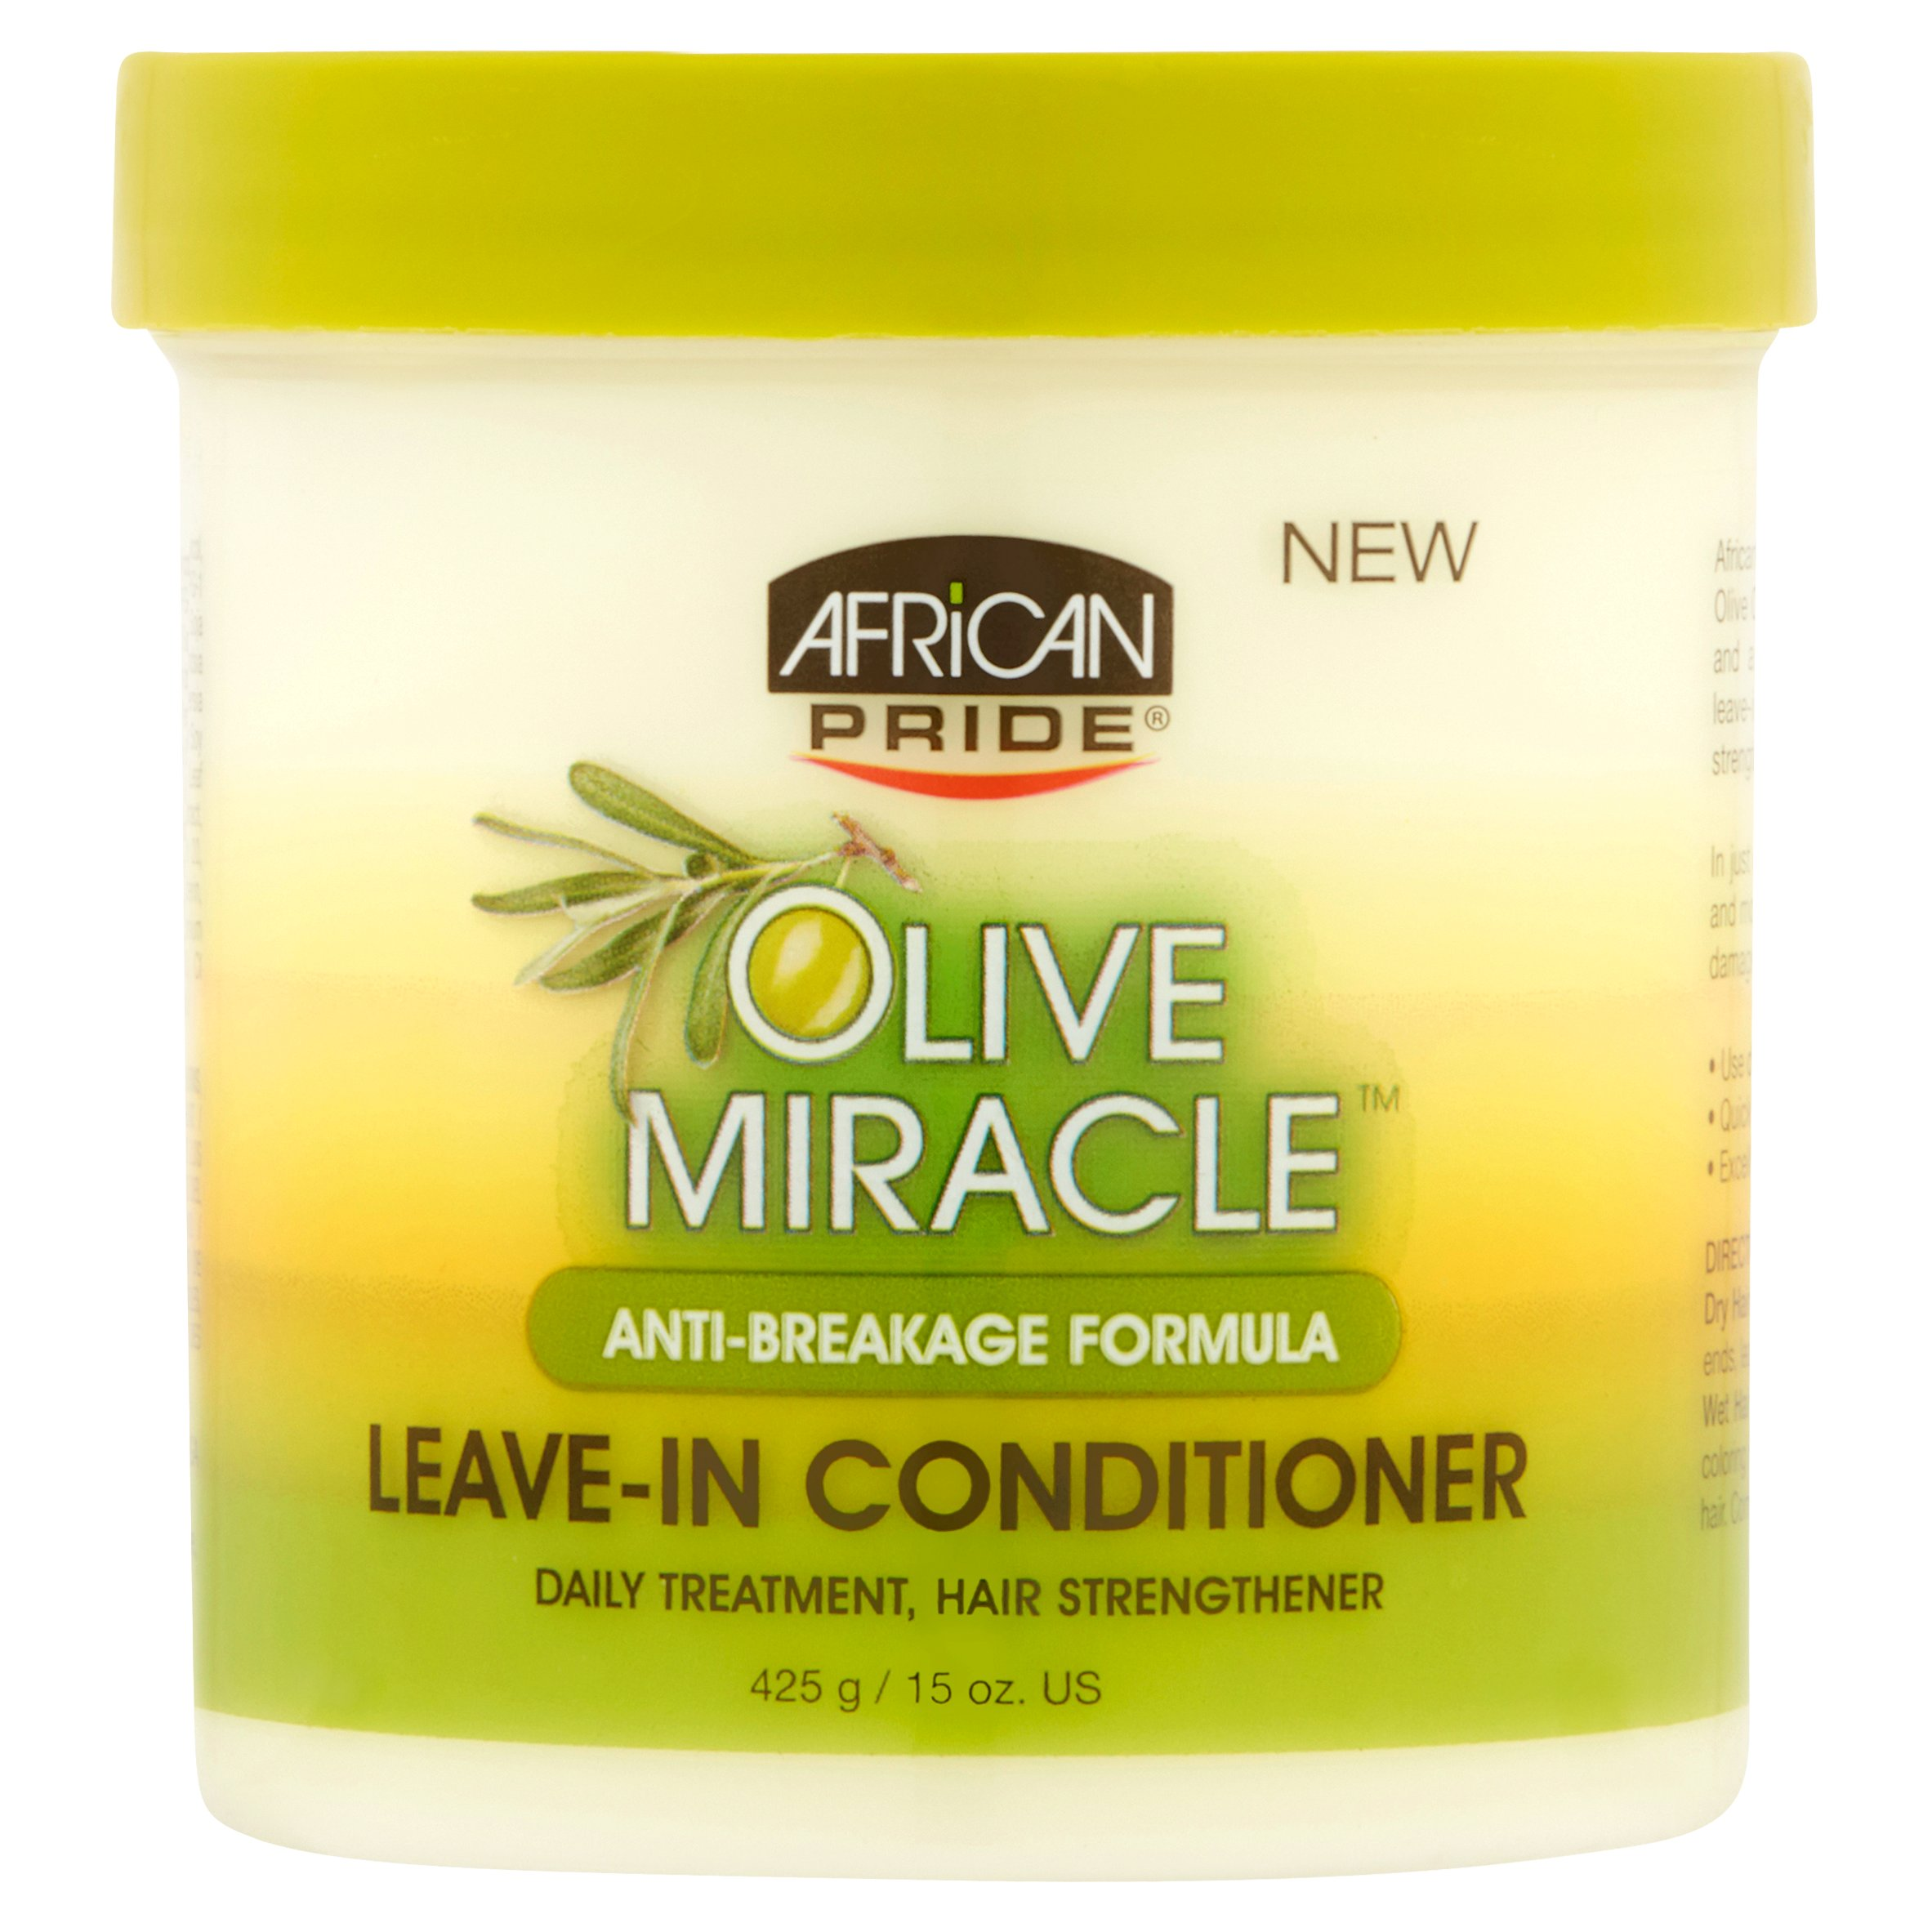 African Pride Olive Miracle Anti-Breakage Formula Leave-In Conditioner 15 oz. Jar